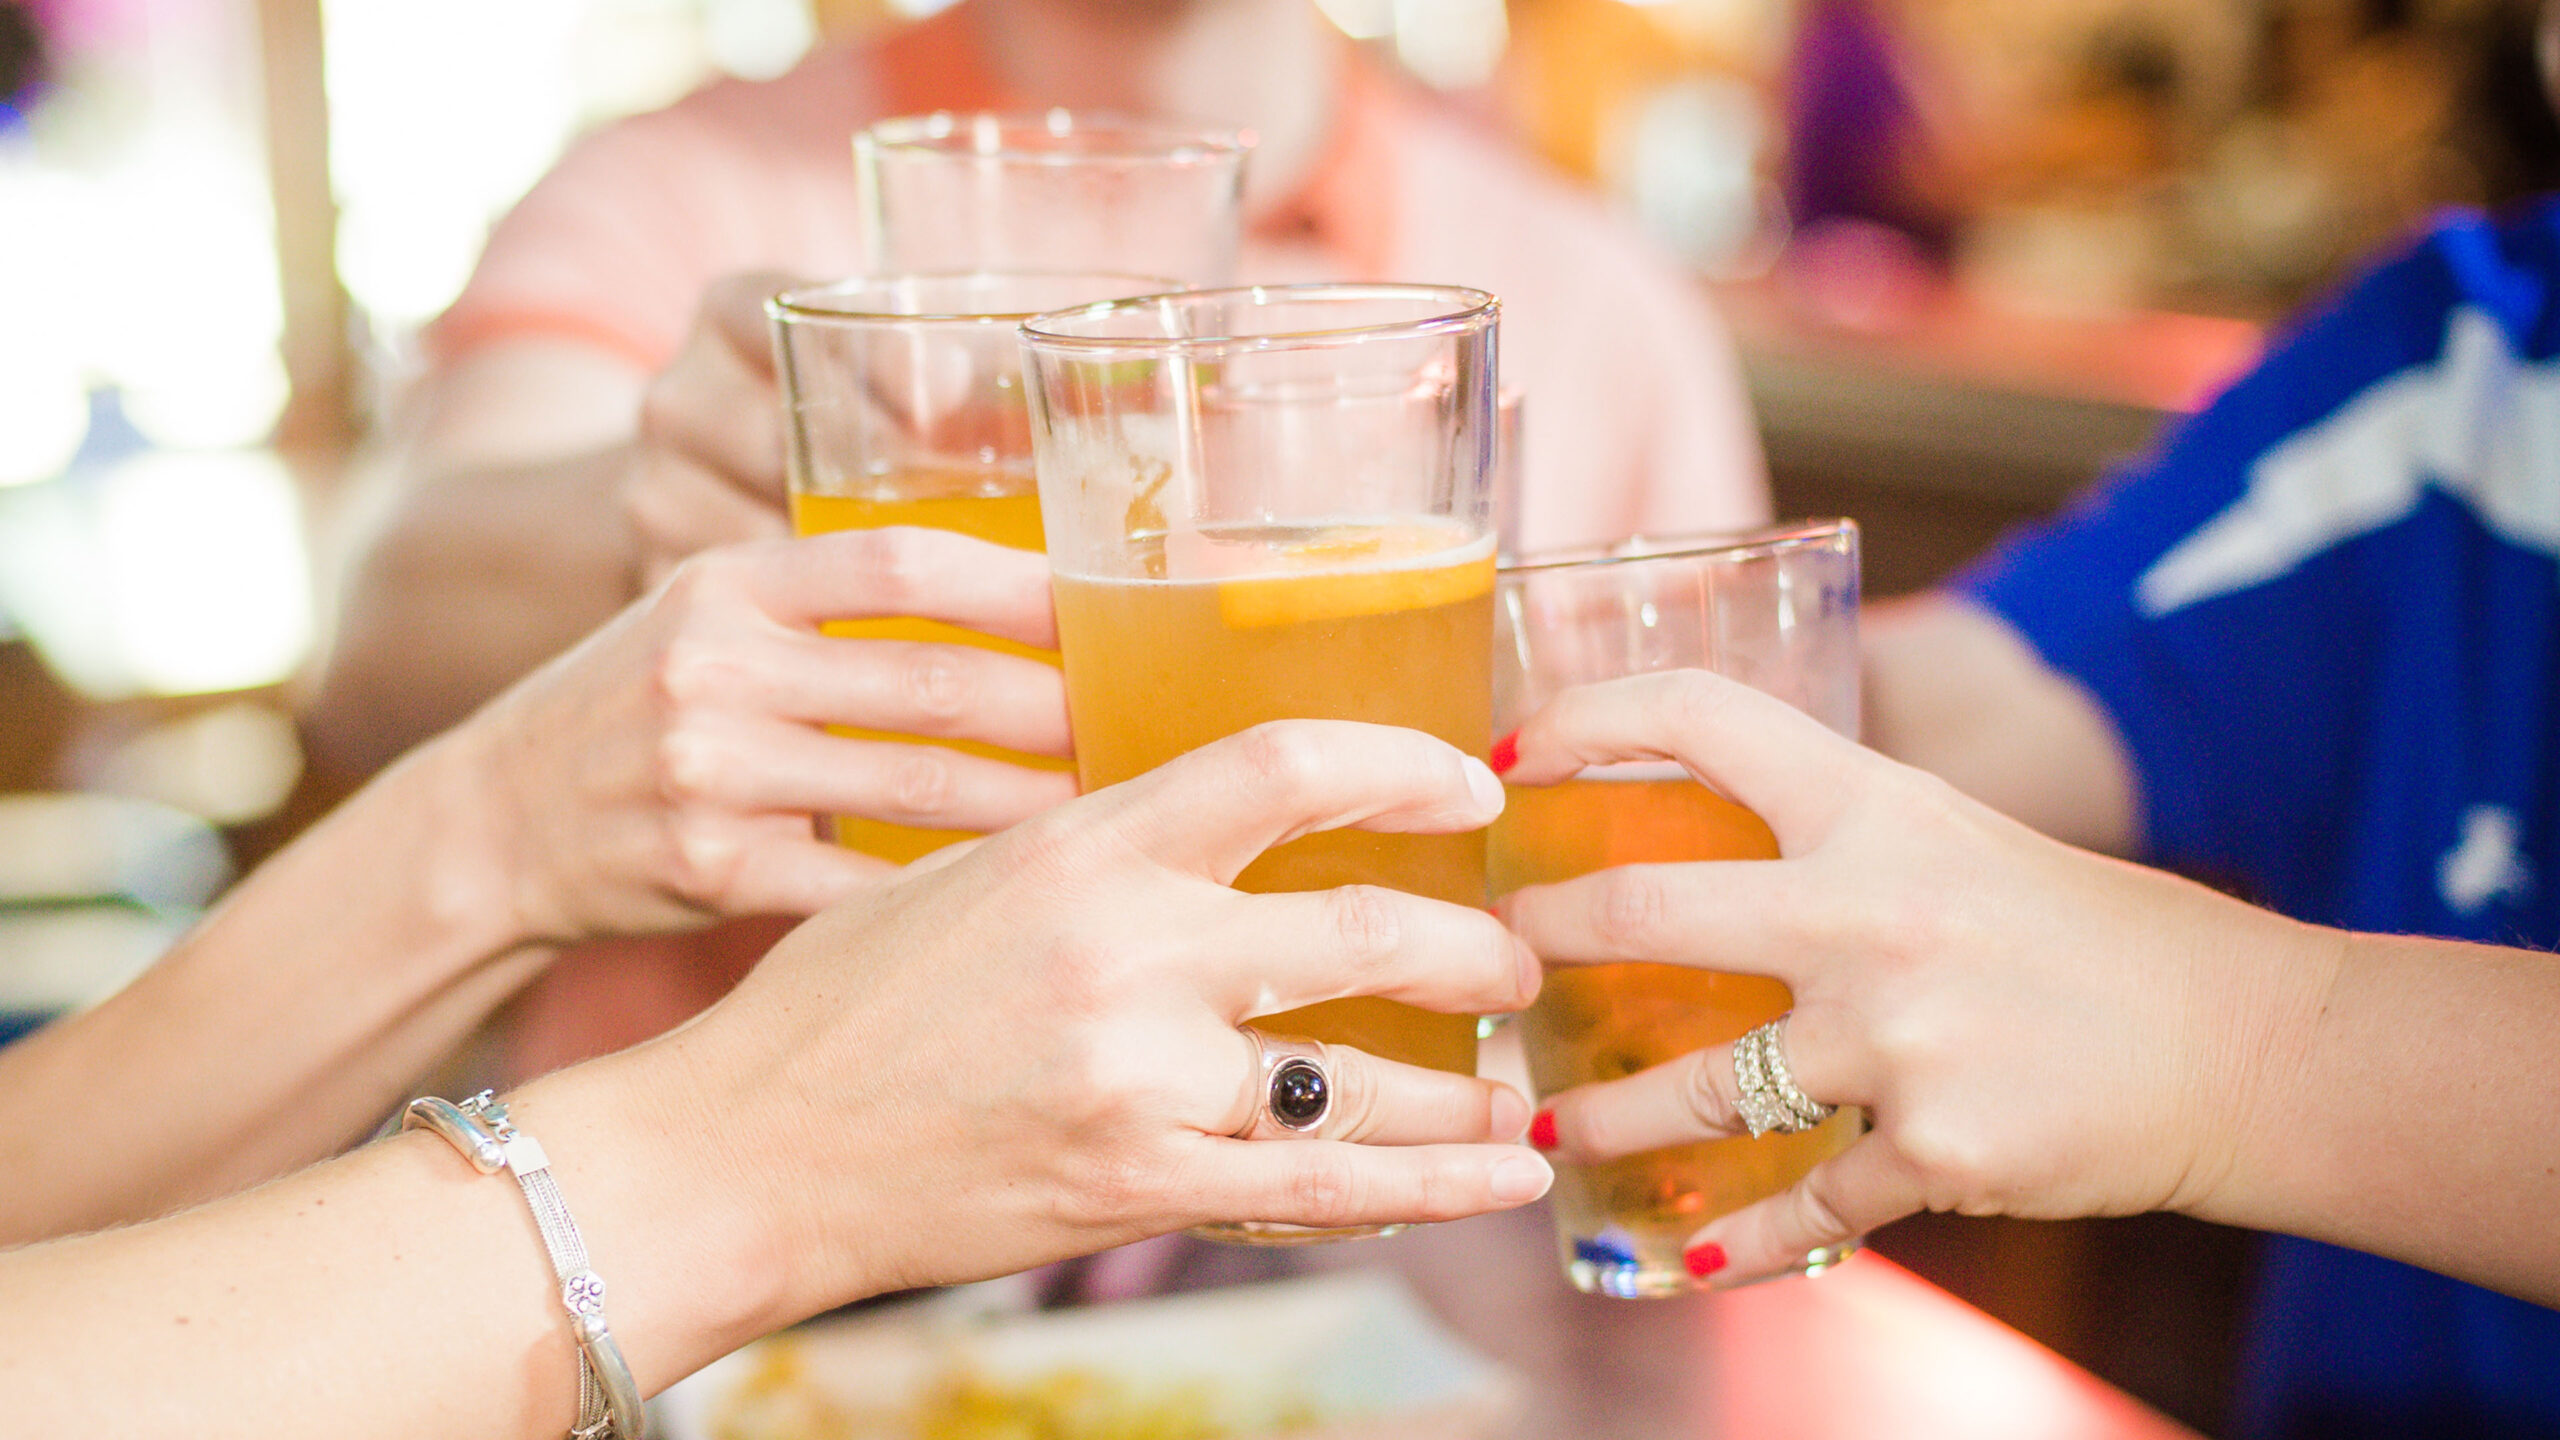 Women toasting cheers with beer glasses